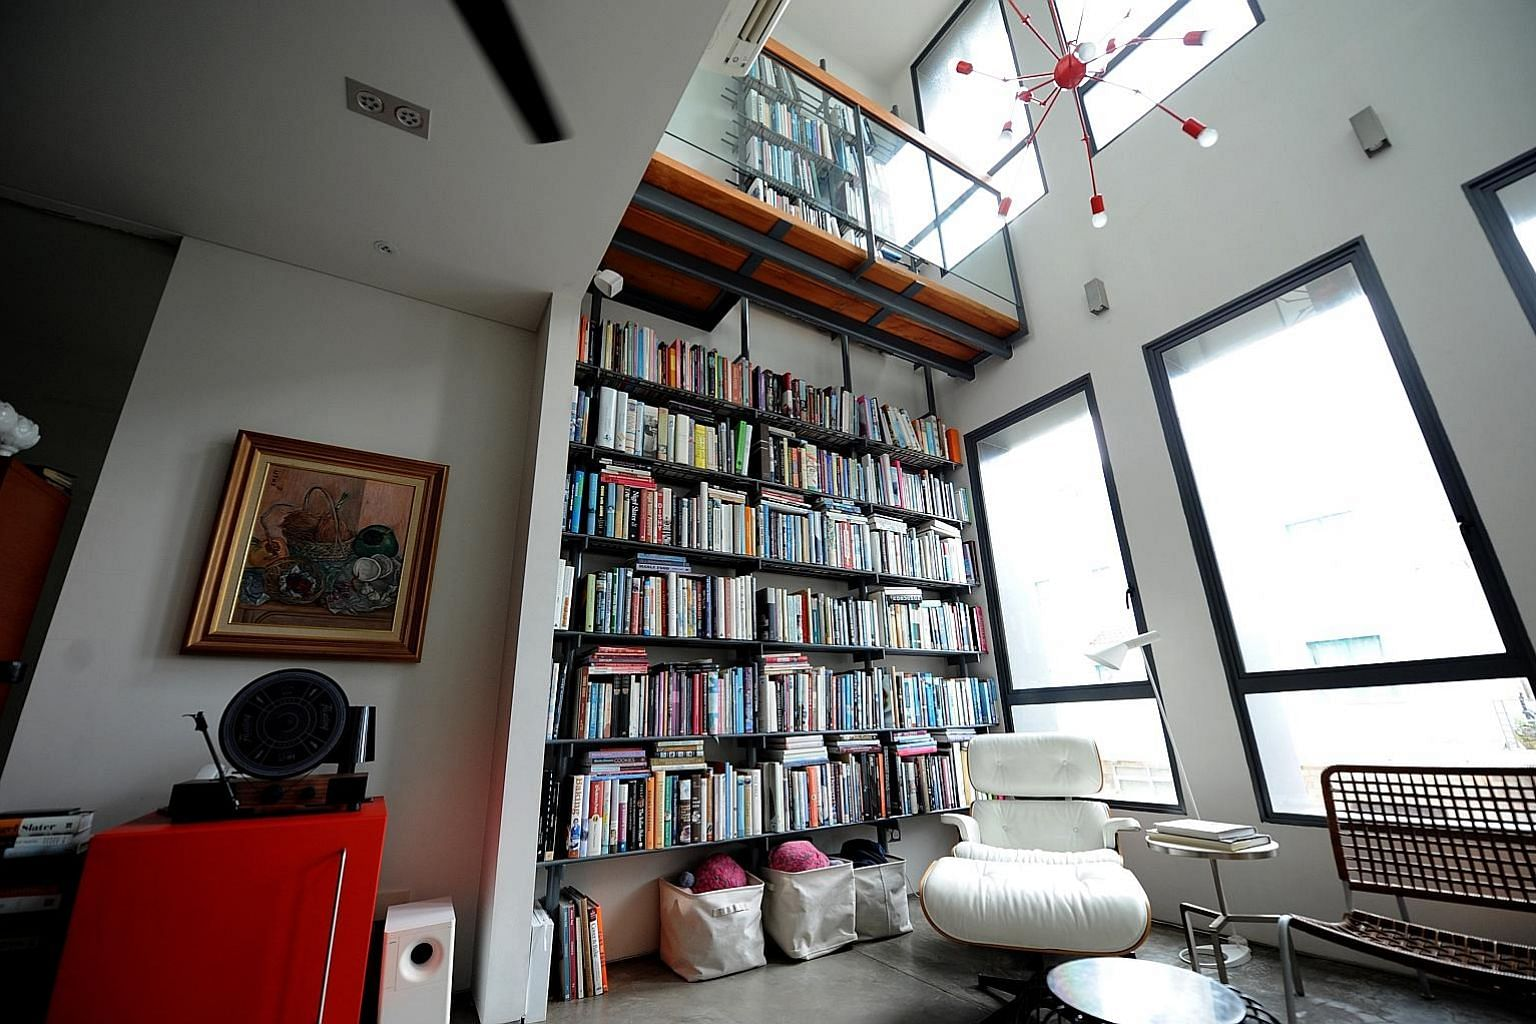 A 6m-high bookshelf is a prominent feature in the house of food blogger Aun Koh and his wife Tan Su-Lyn.